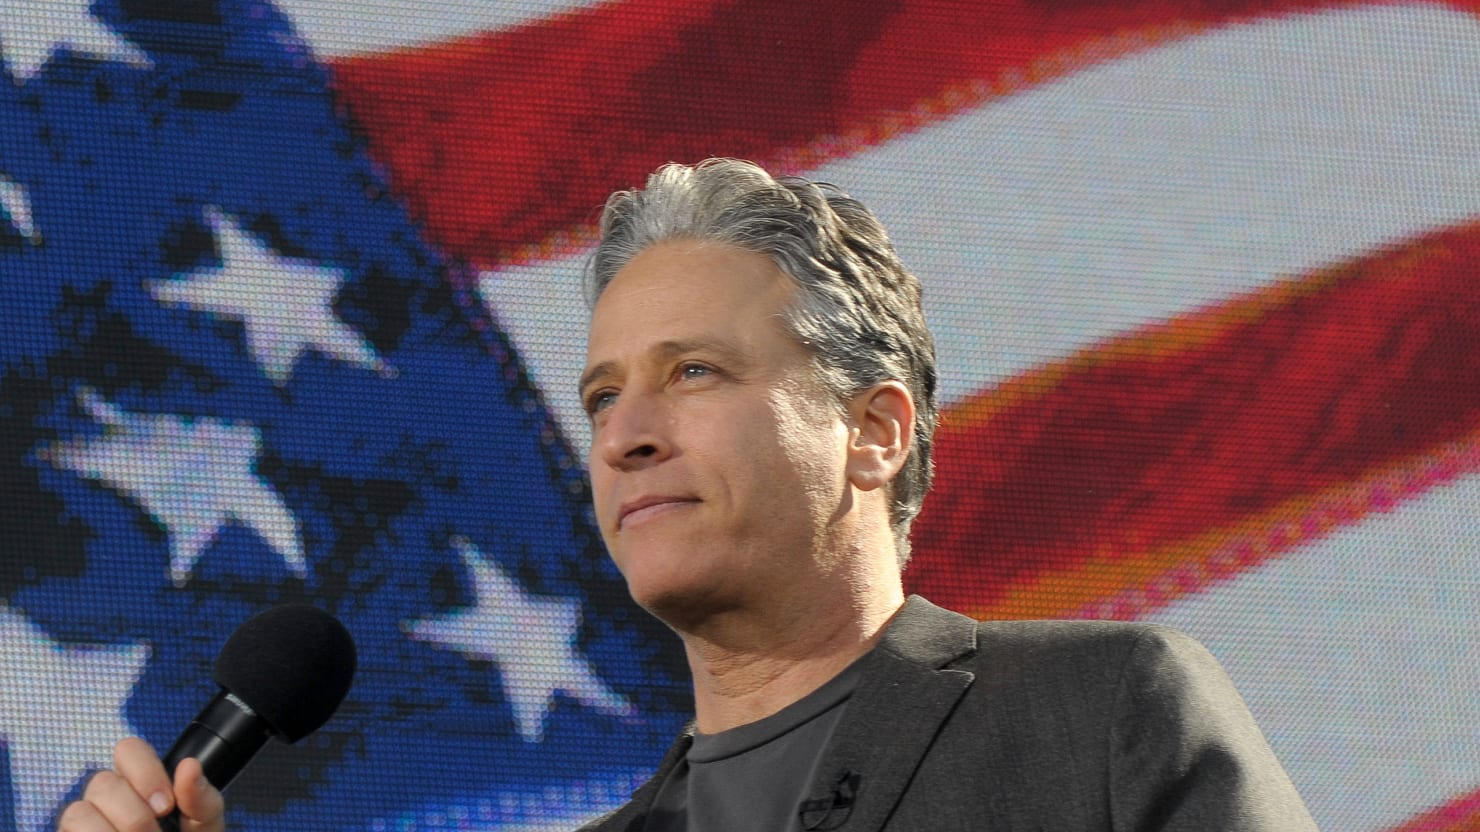 Jon Stewart Goes To Washington To Fight For 911 First